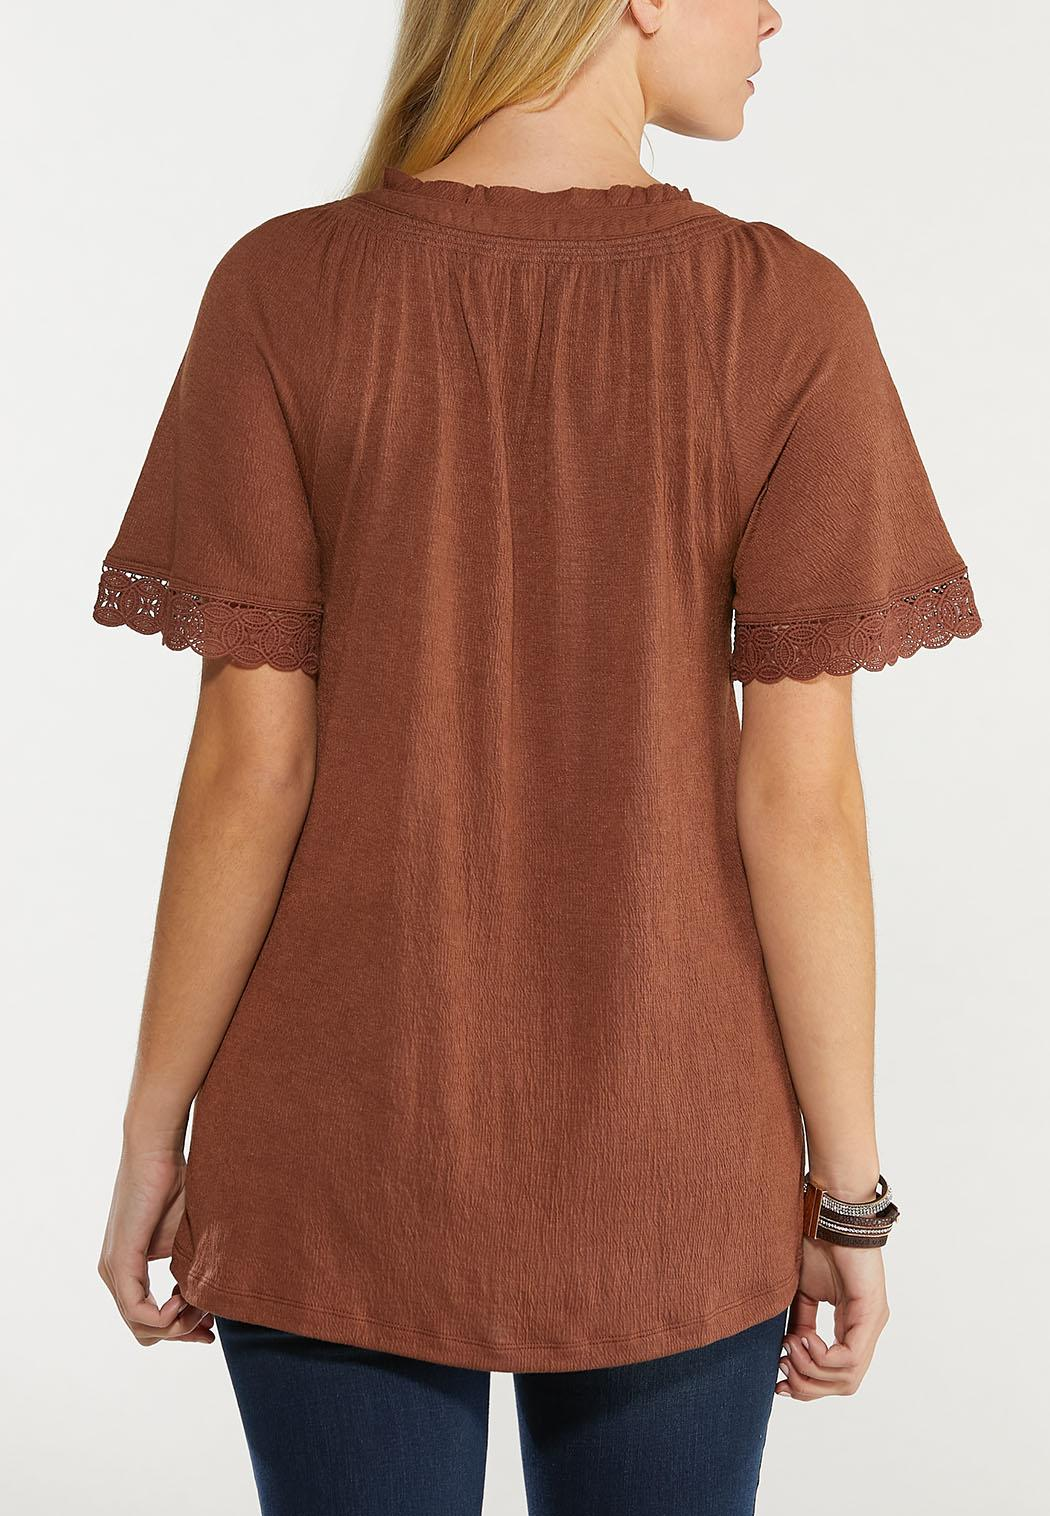 Plus Size Chocolate Lace Trim Poet Top (Item #44515322)